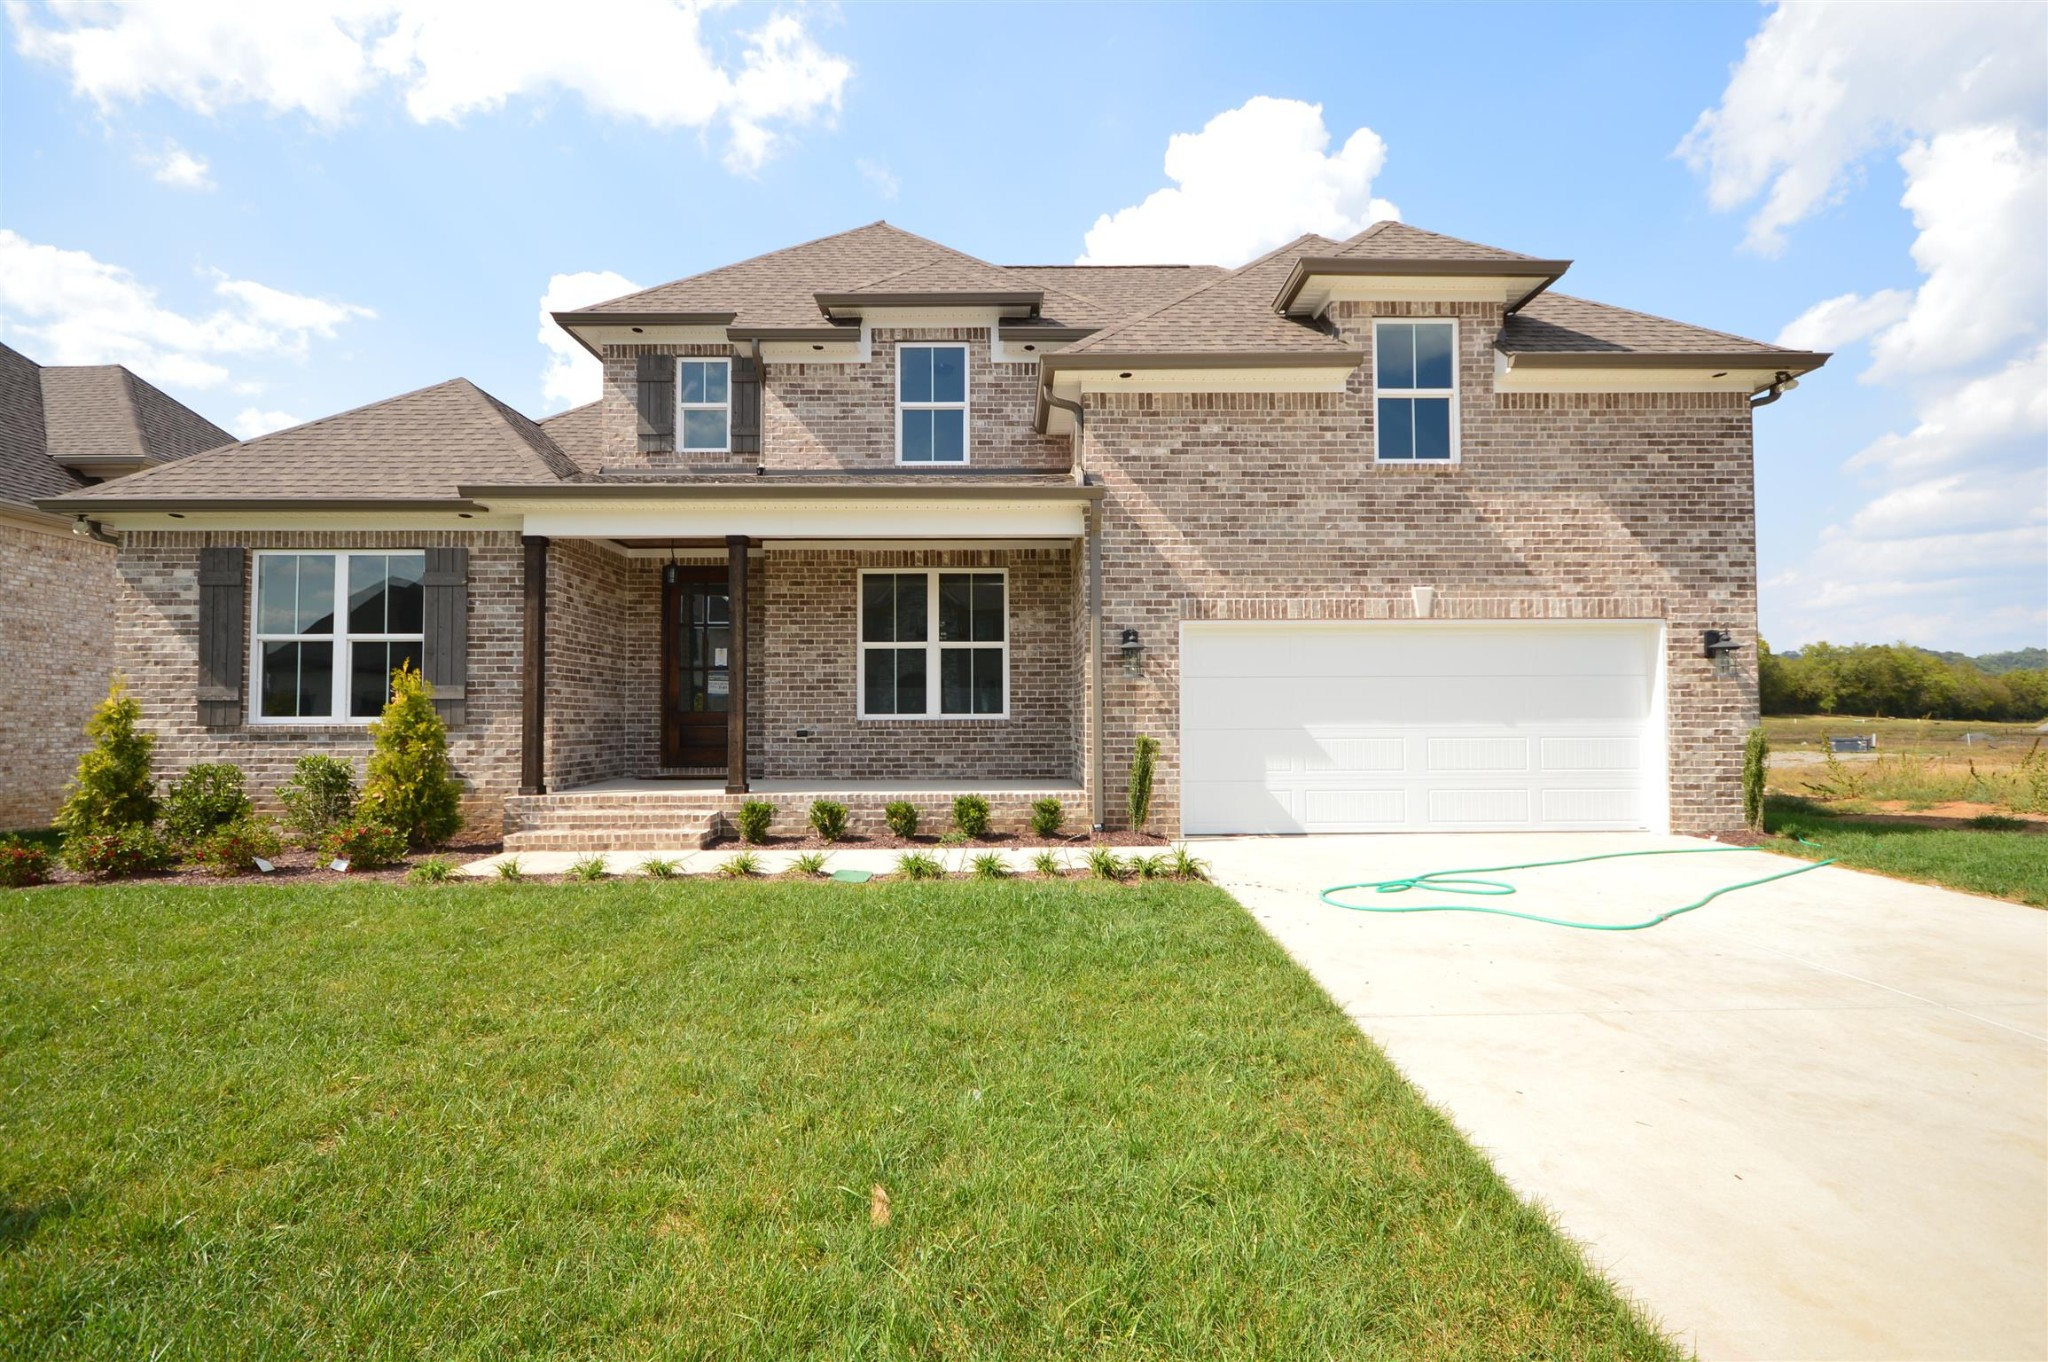 4079 Miles Johnson Pkwy (5), Spring Hill, TN 37174 - Spring Hill, TN real estate listing